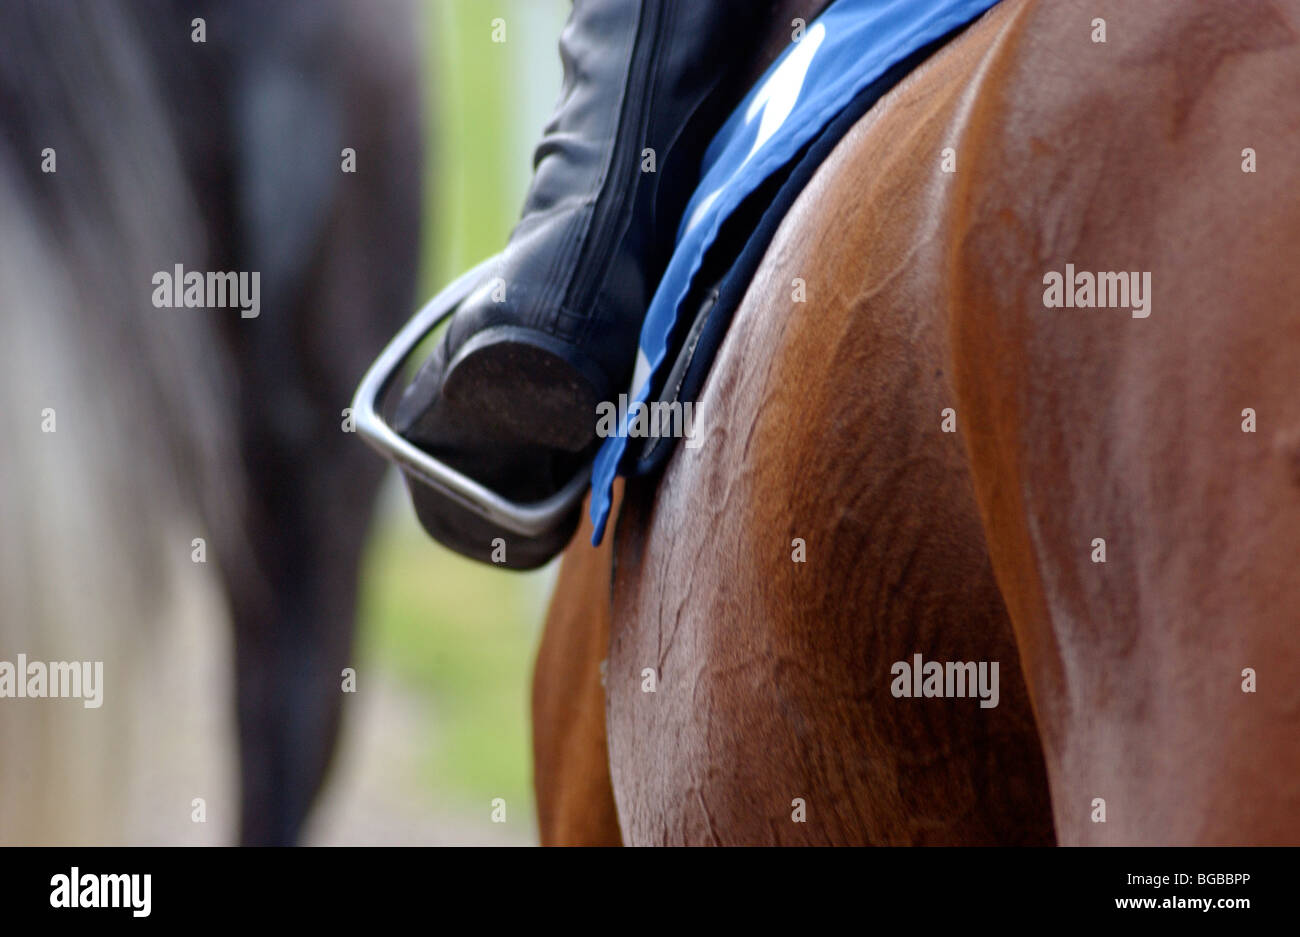 Royalty free photograph of boots saddle stirrup jockey foot on race day UK - Stock Image